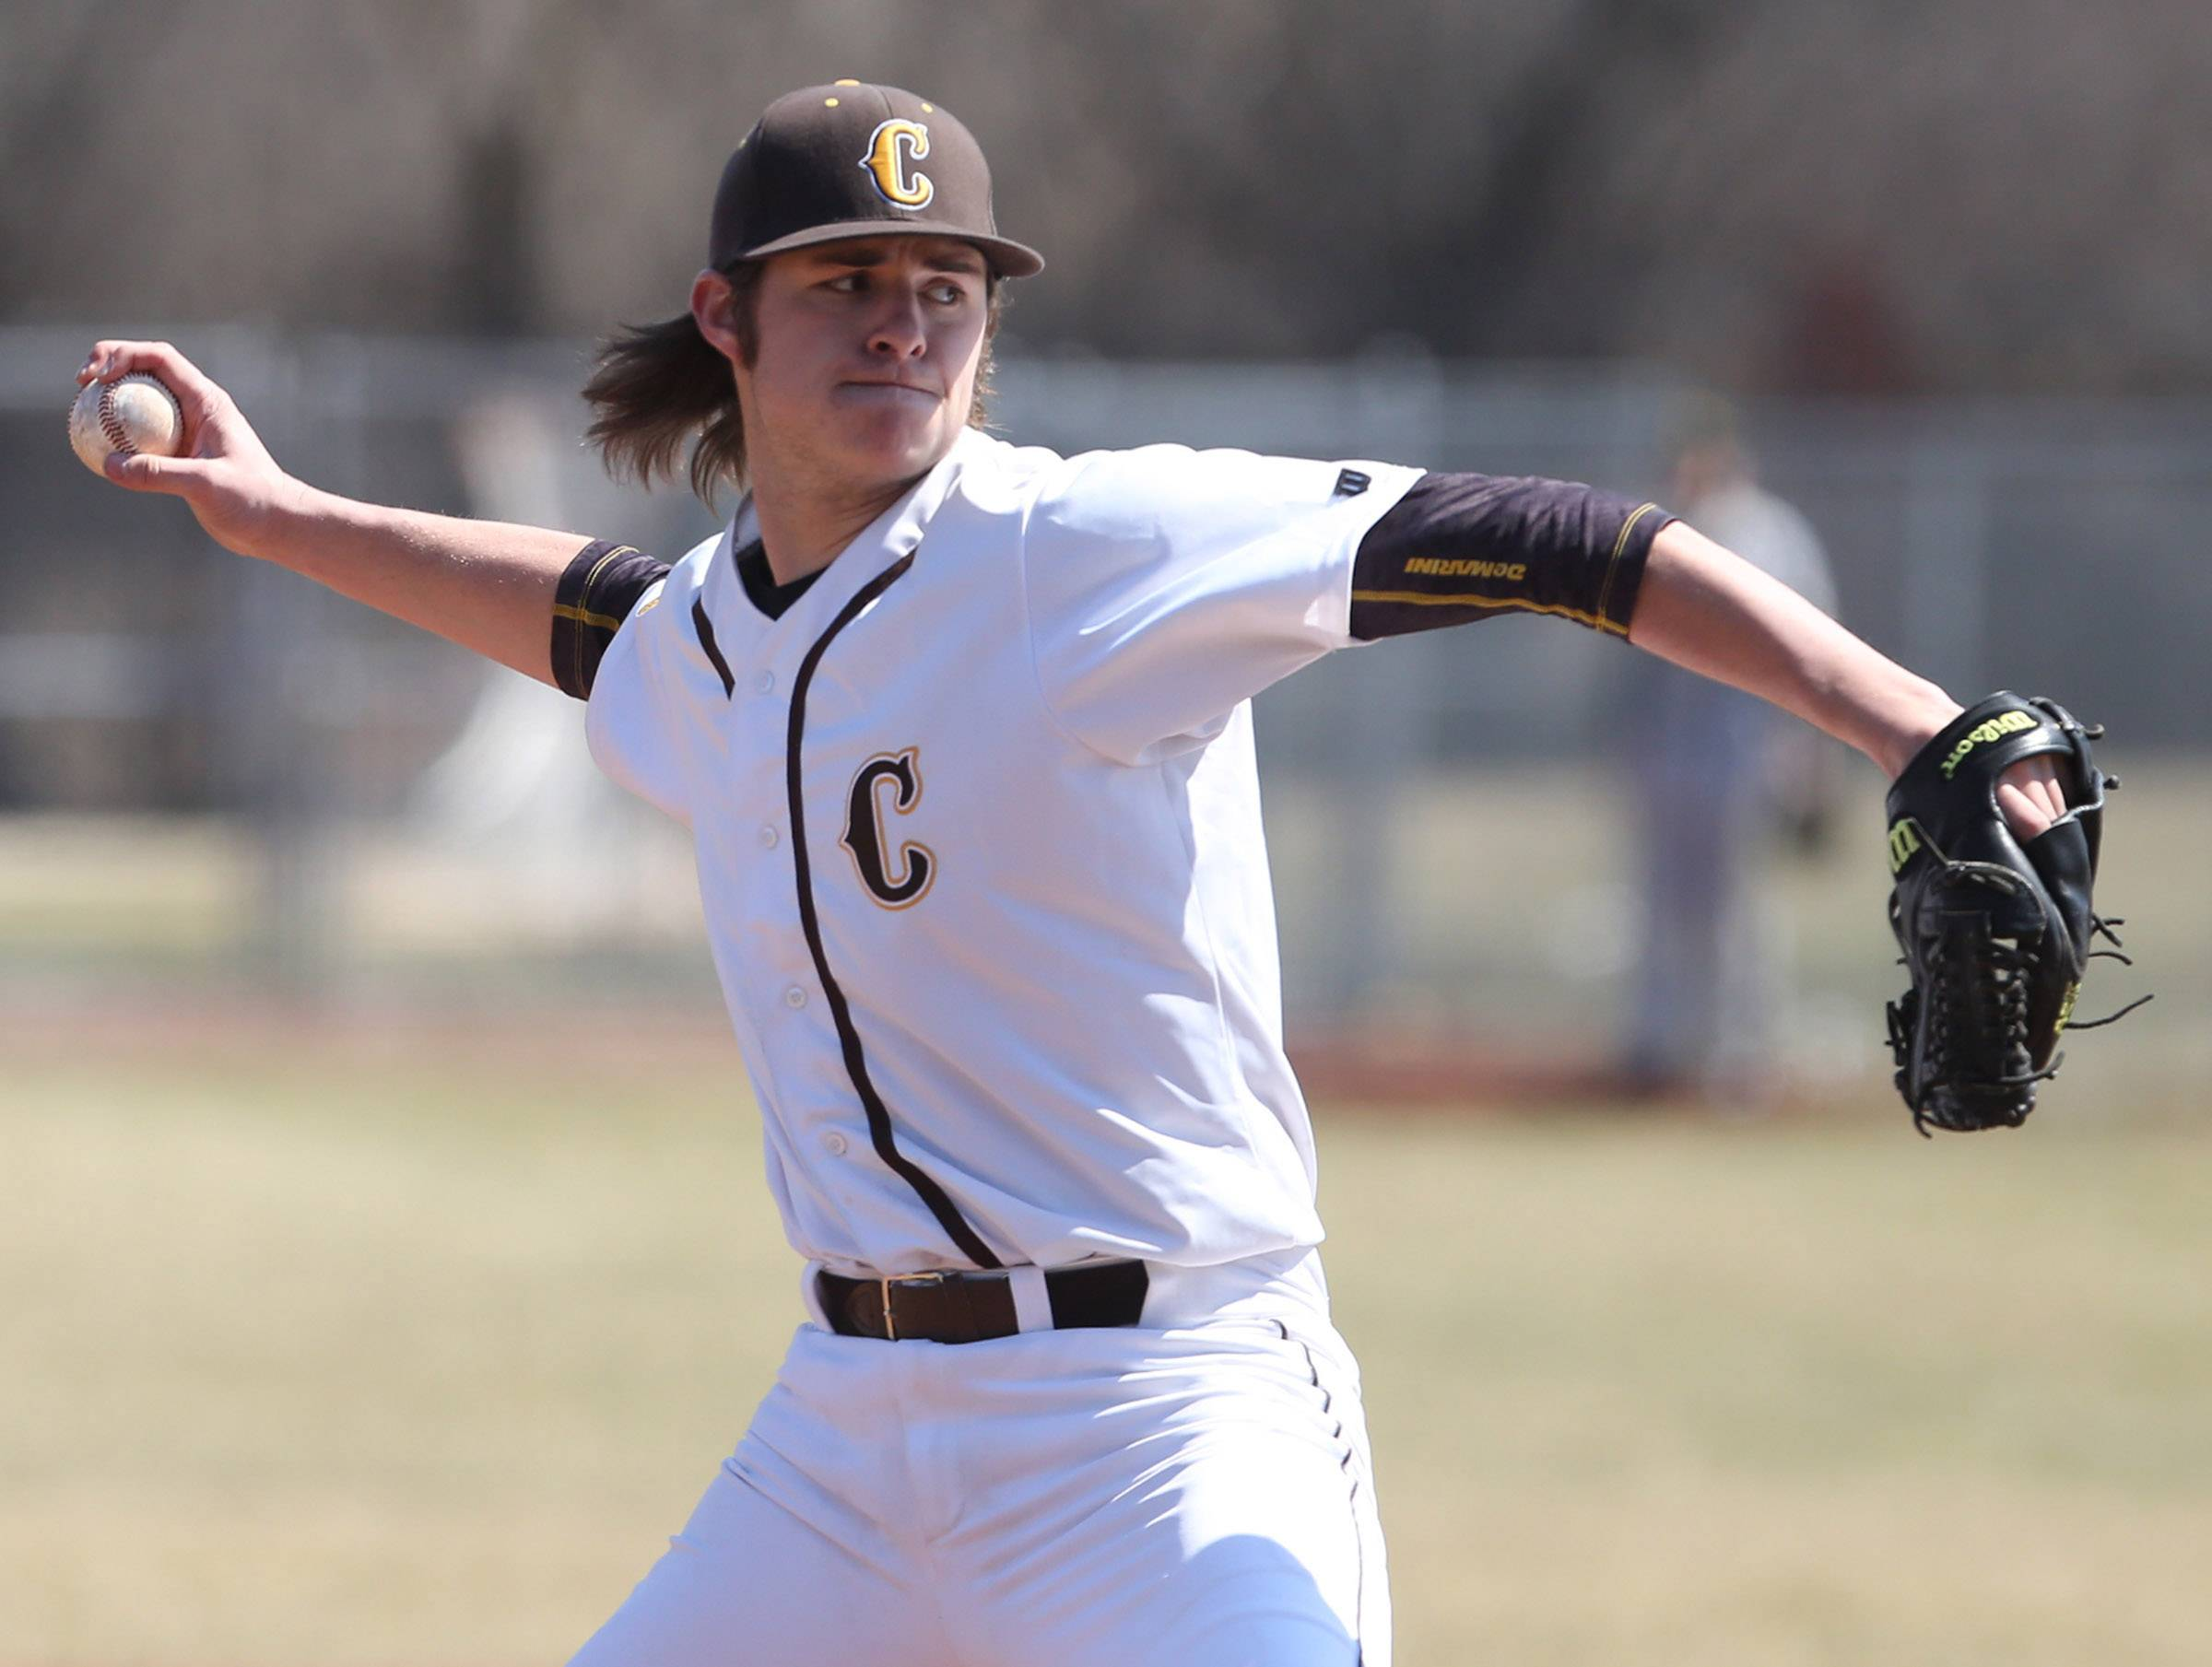 Carmel relief pitcher Dolton Wright faces Stevenson on Saturday in Mundelein.